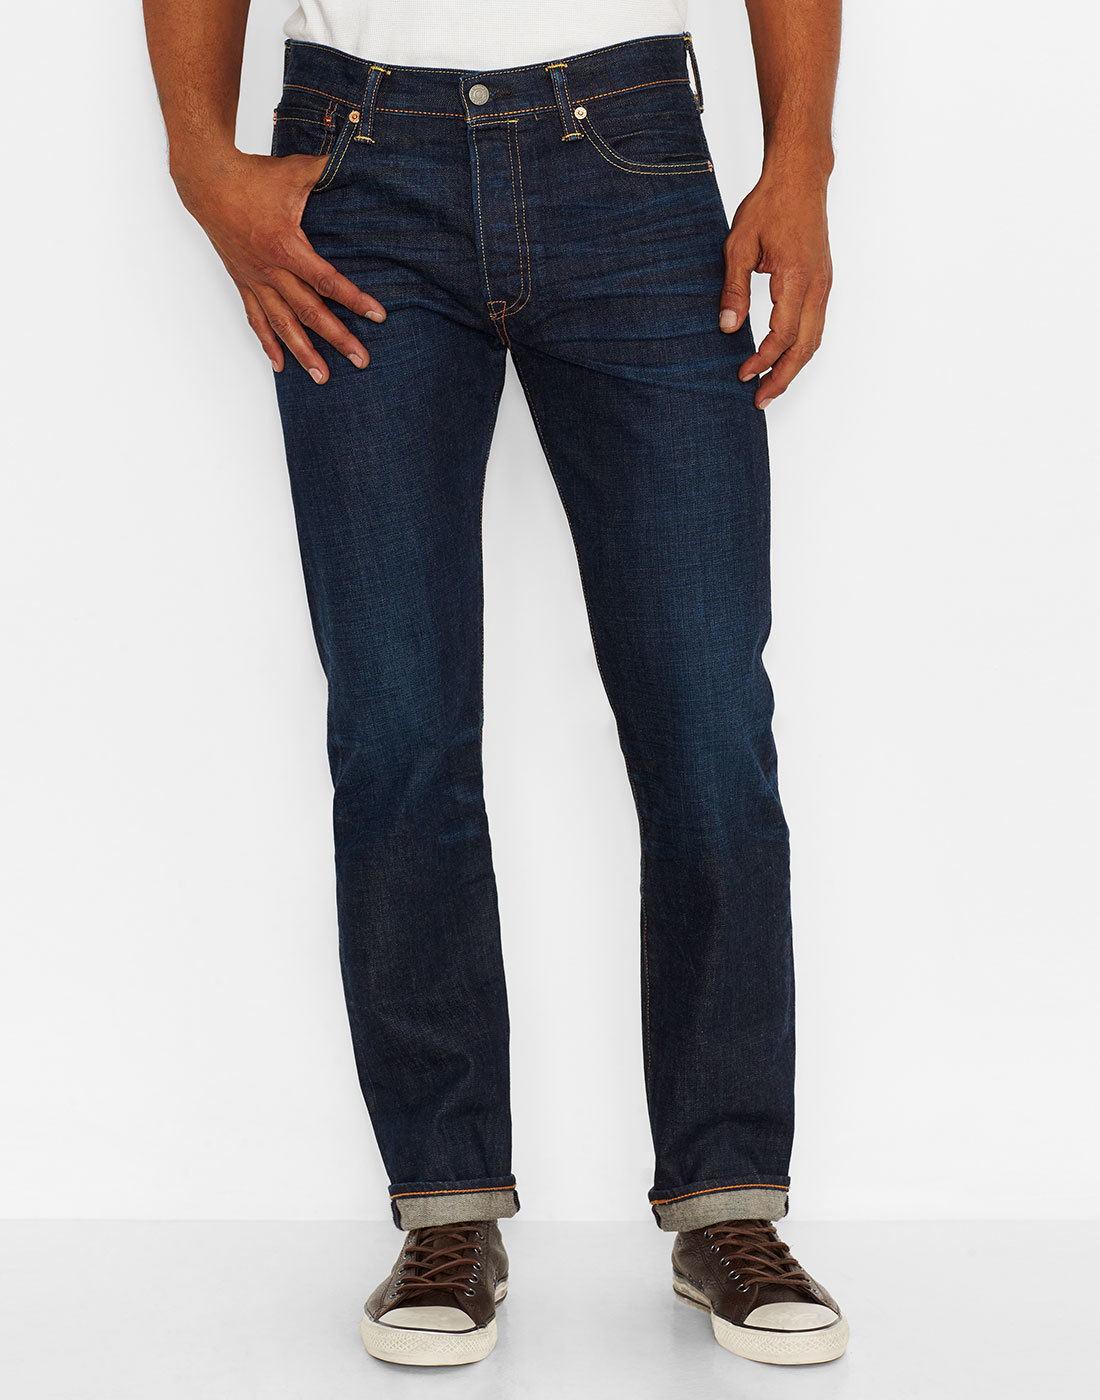 LEVI'S® 501 Original Straight Jeans - Blue Lane